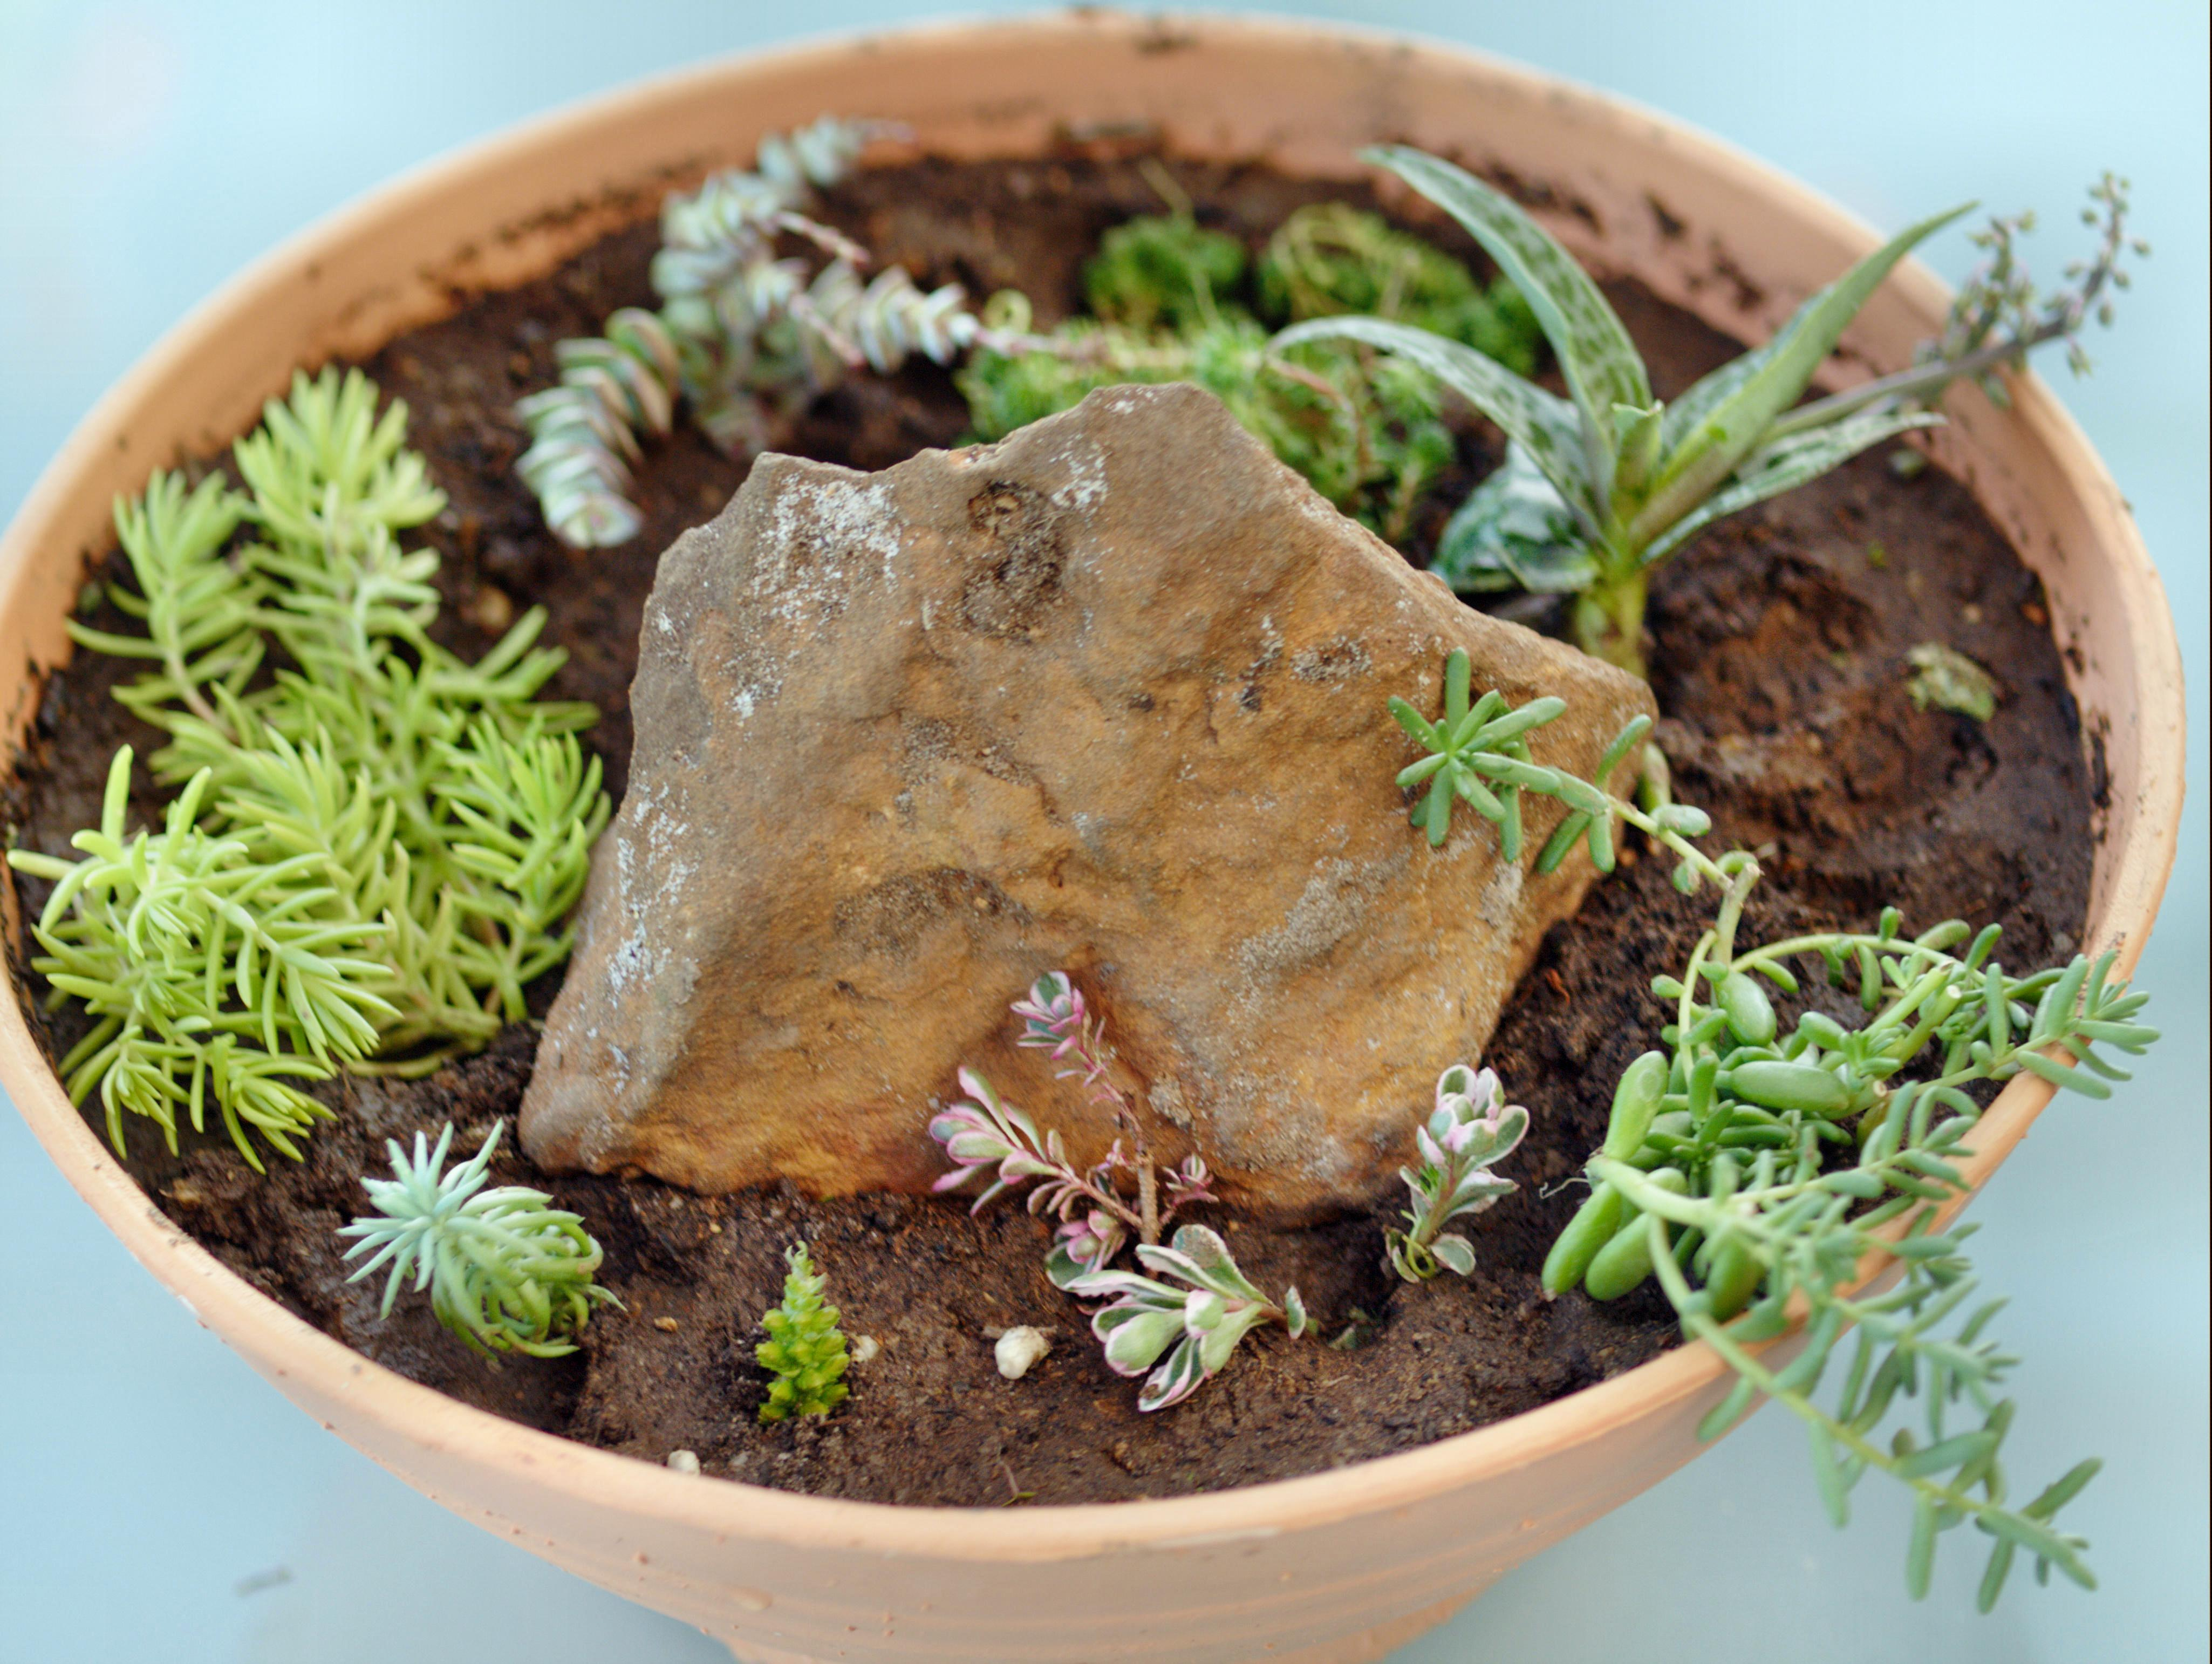 New-succulent-garden-3.jpeg